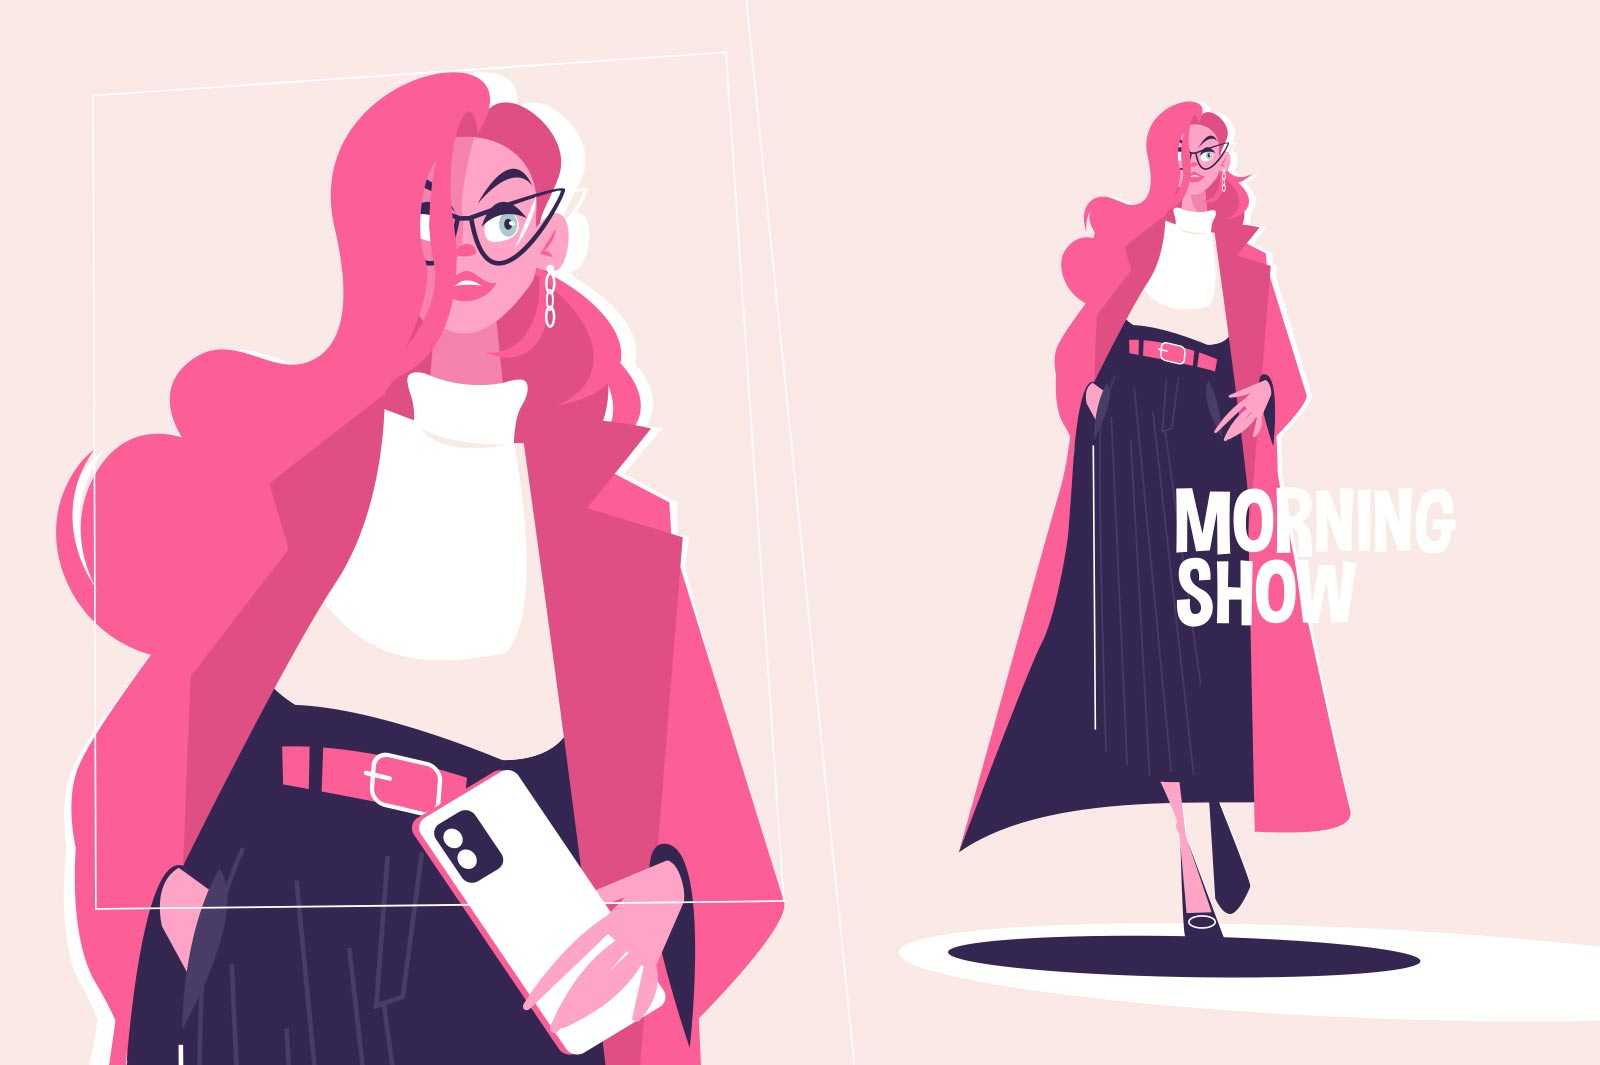 Girl fashionably dressed vector illustration. Stylish woman walking on runway flat style. Model with smartphone. Morning show and fashion industry concept. Isolated on pink background